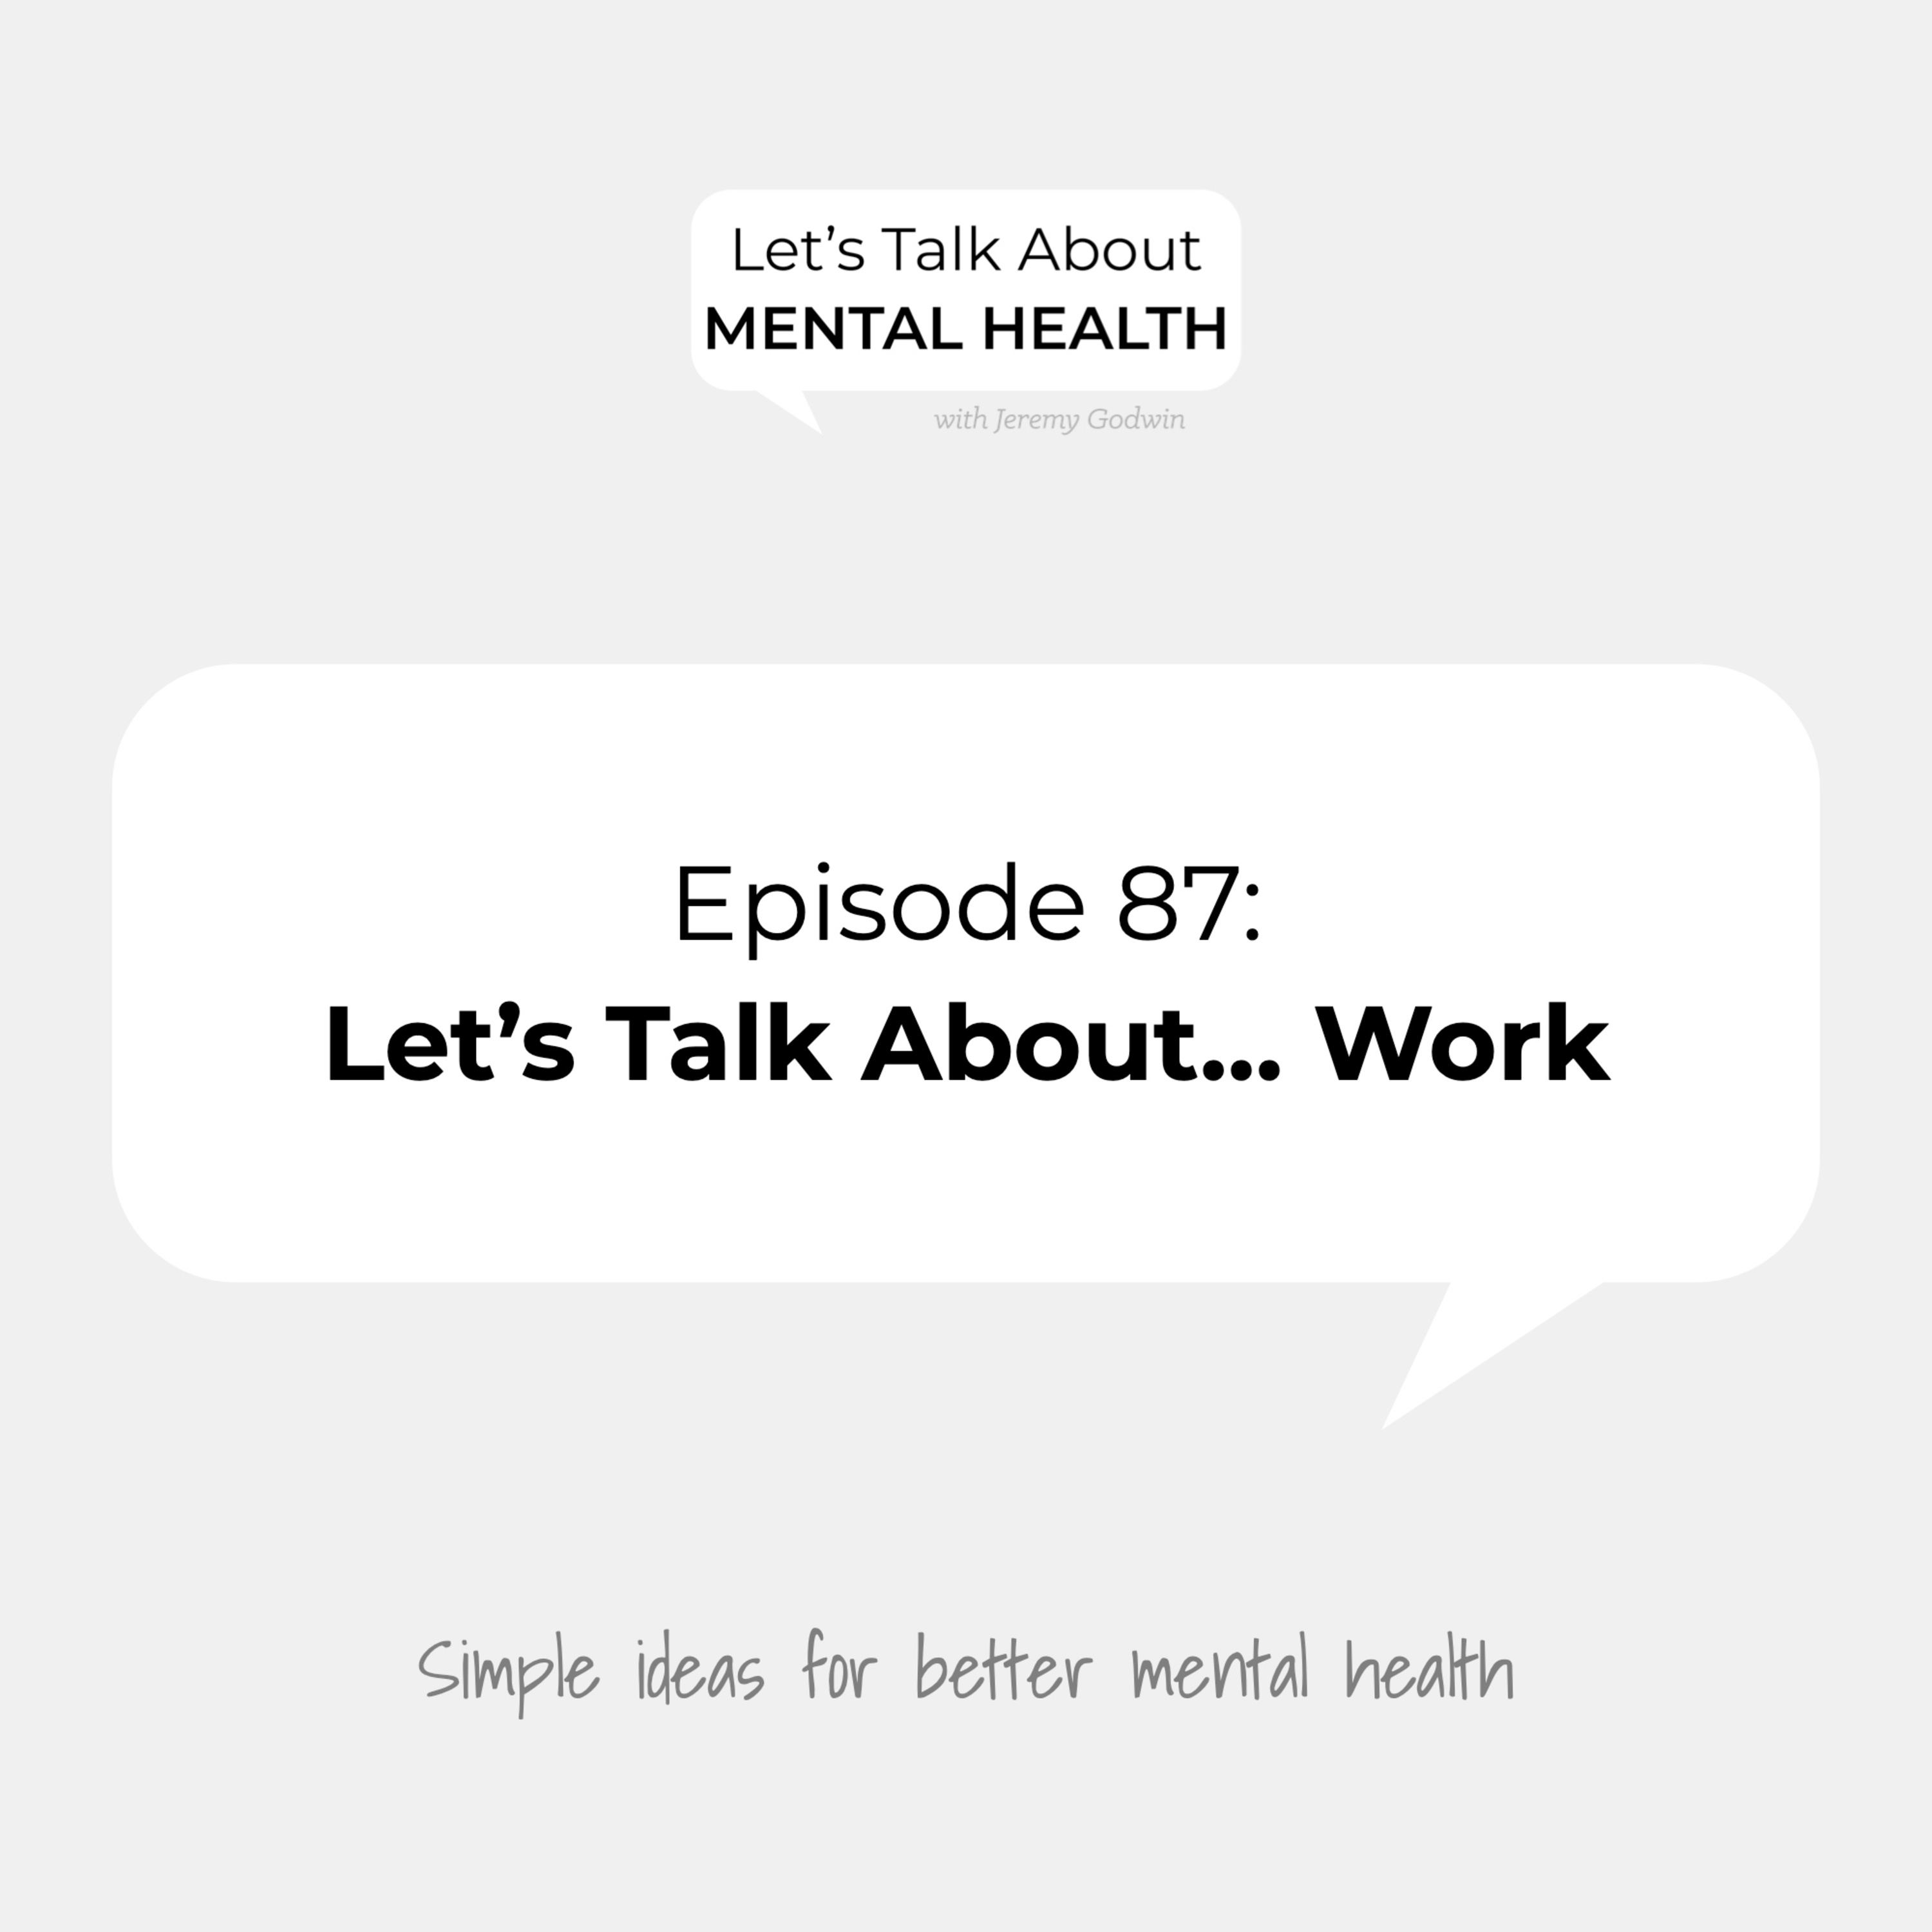 Let's Talk About Mental Health - Let's Talk About... Work